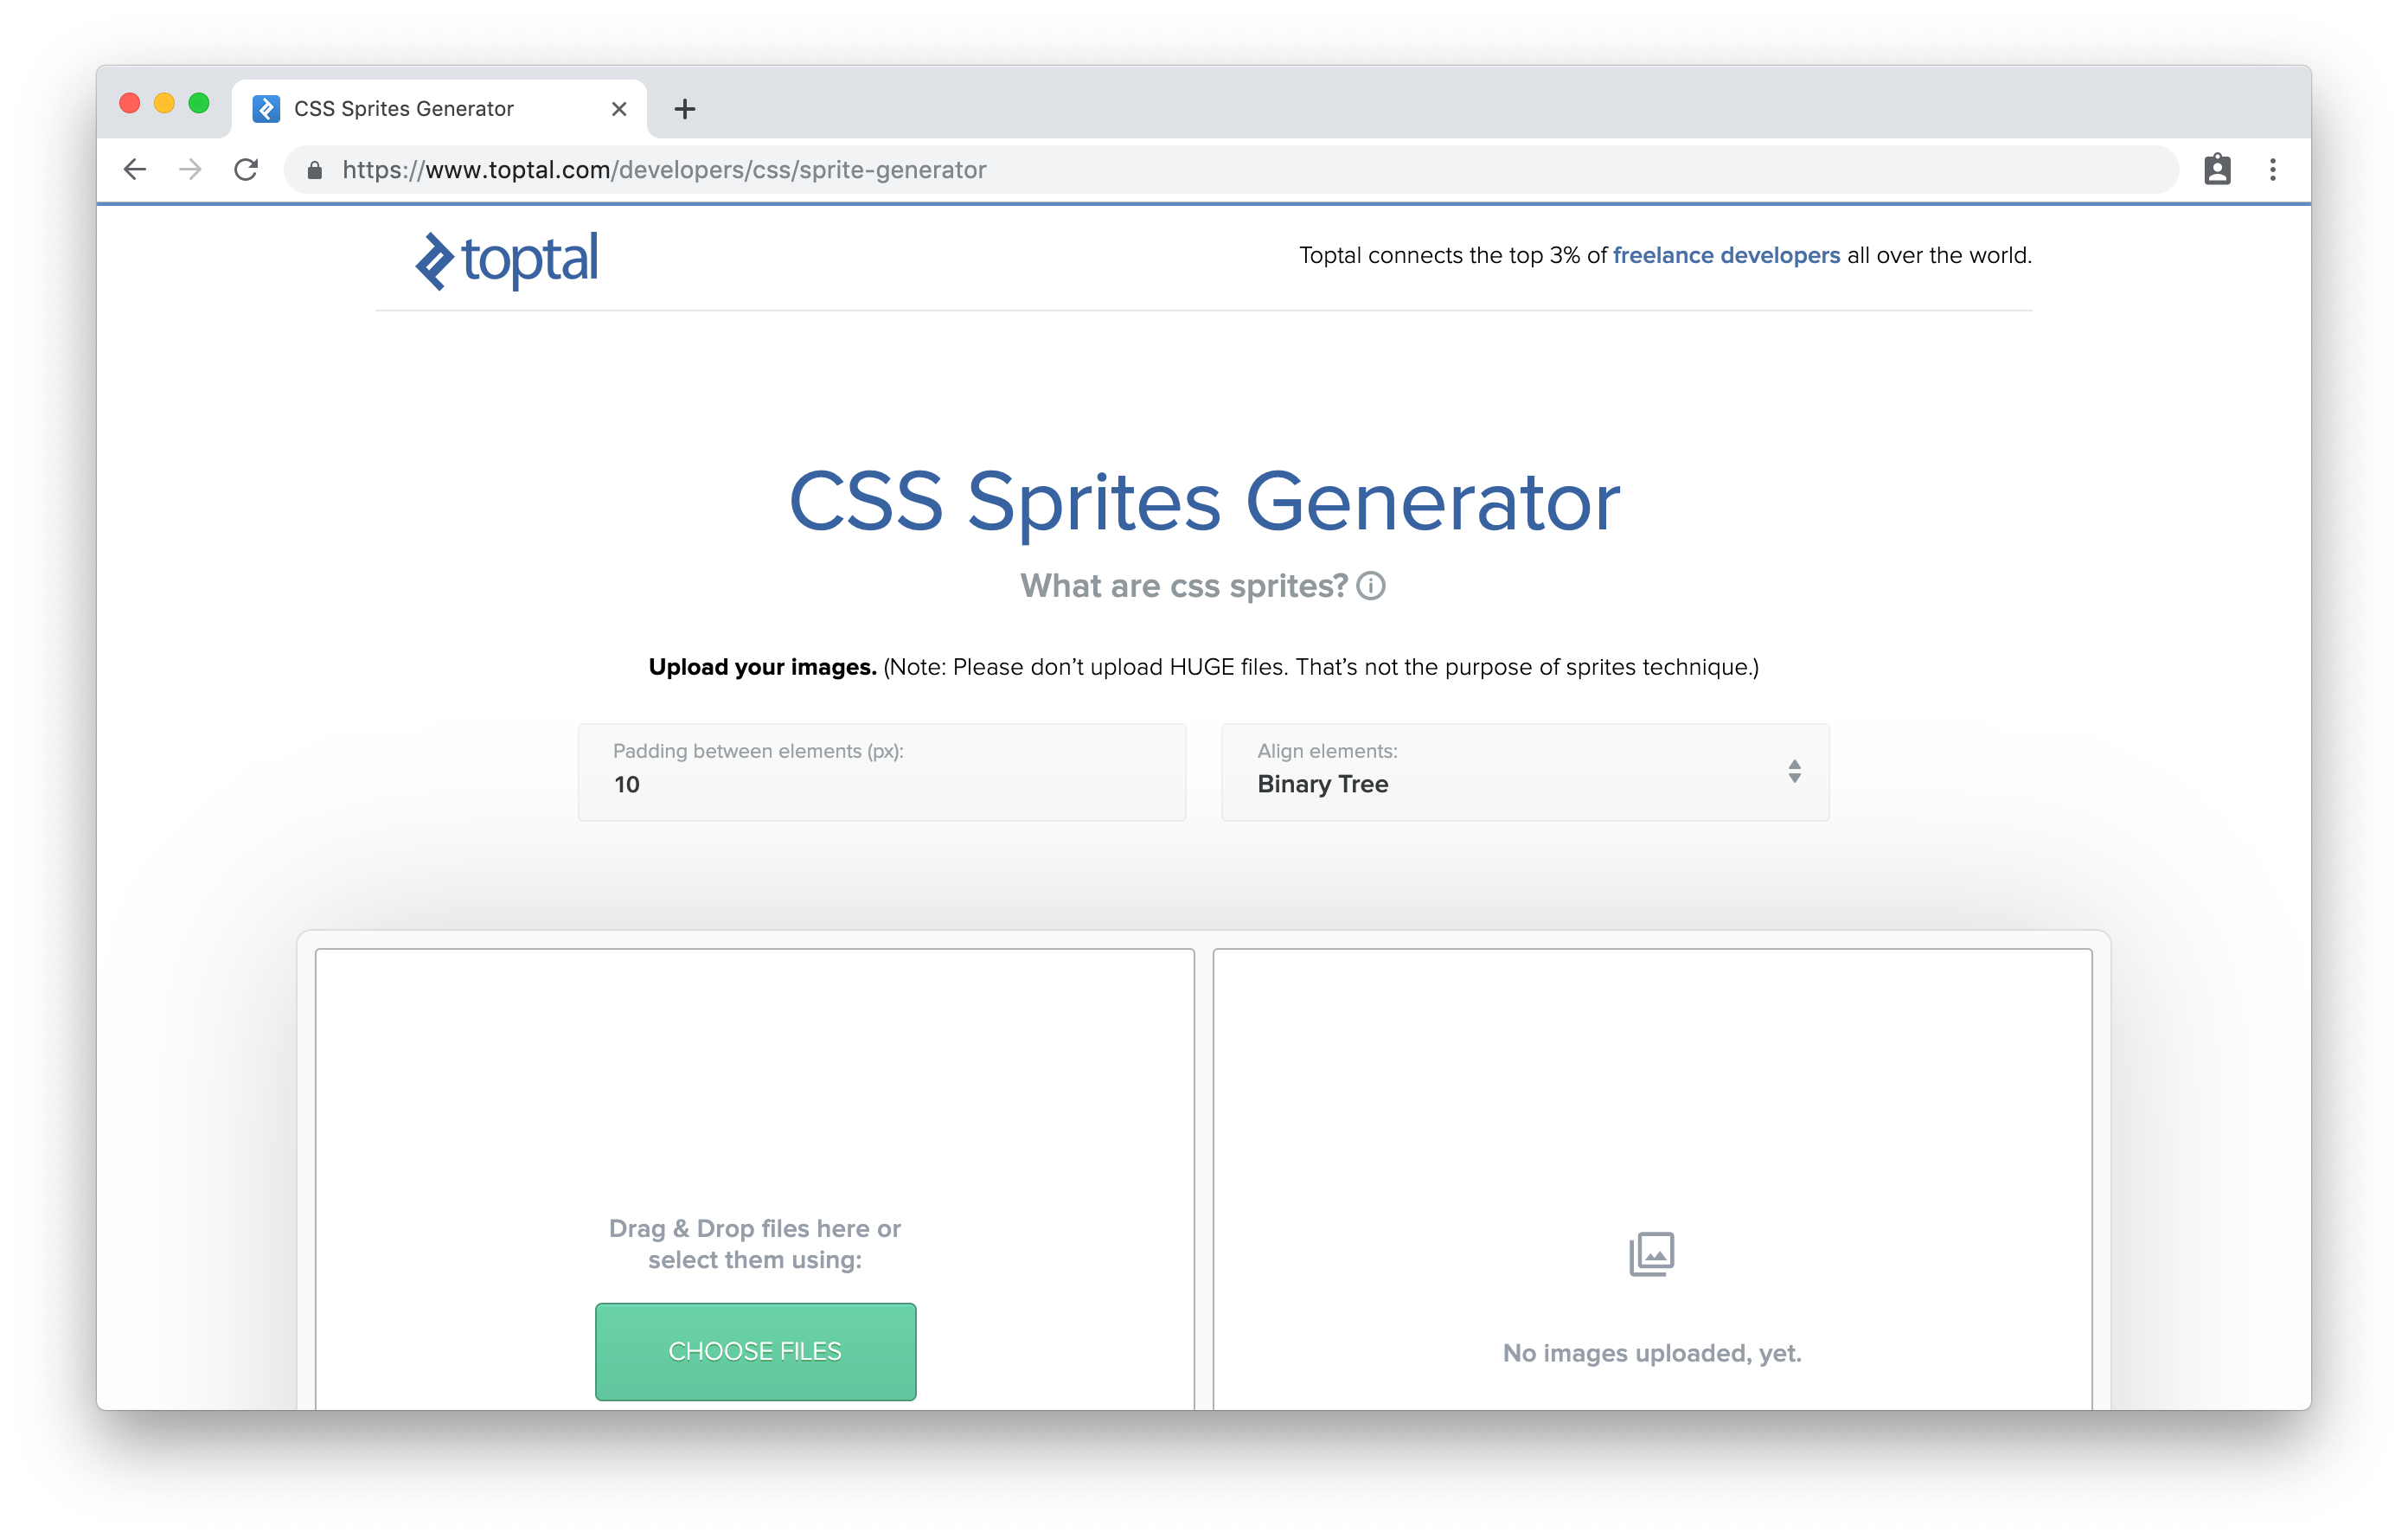 toptal.com/developers/css/sprite-generator